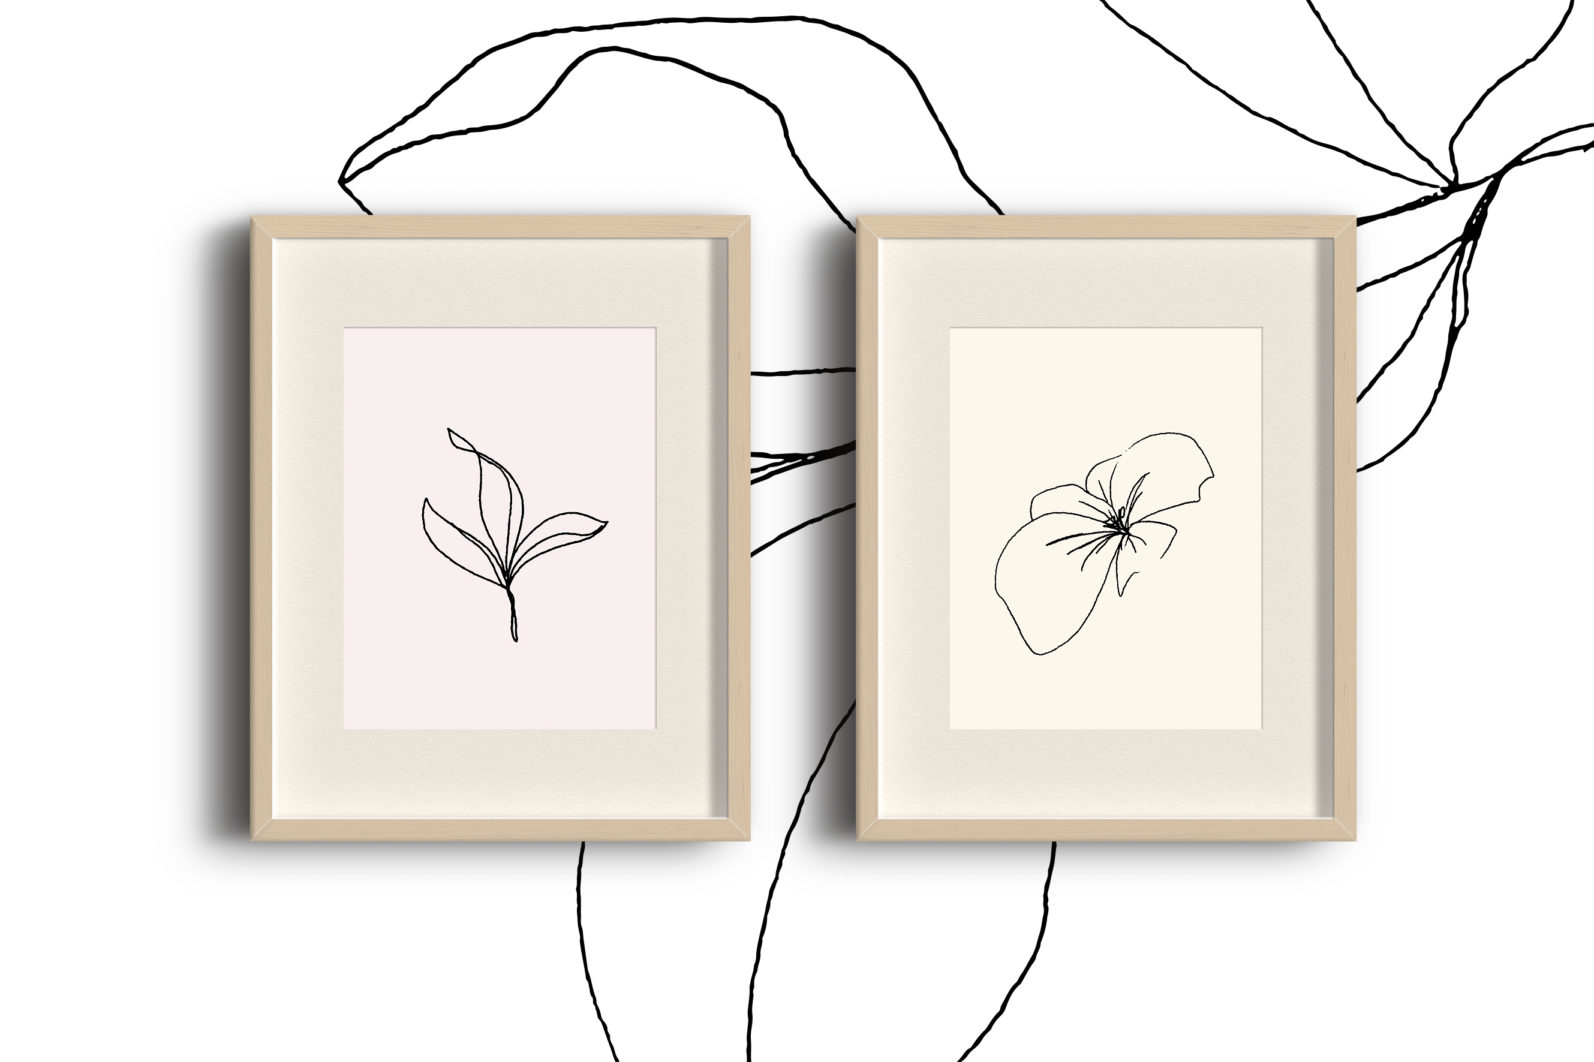 Floral pencil drawing one line art elements, Vector - etsy pencil preview3 -